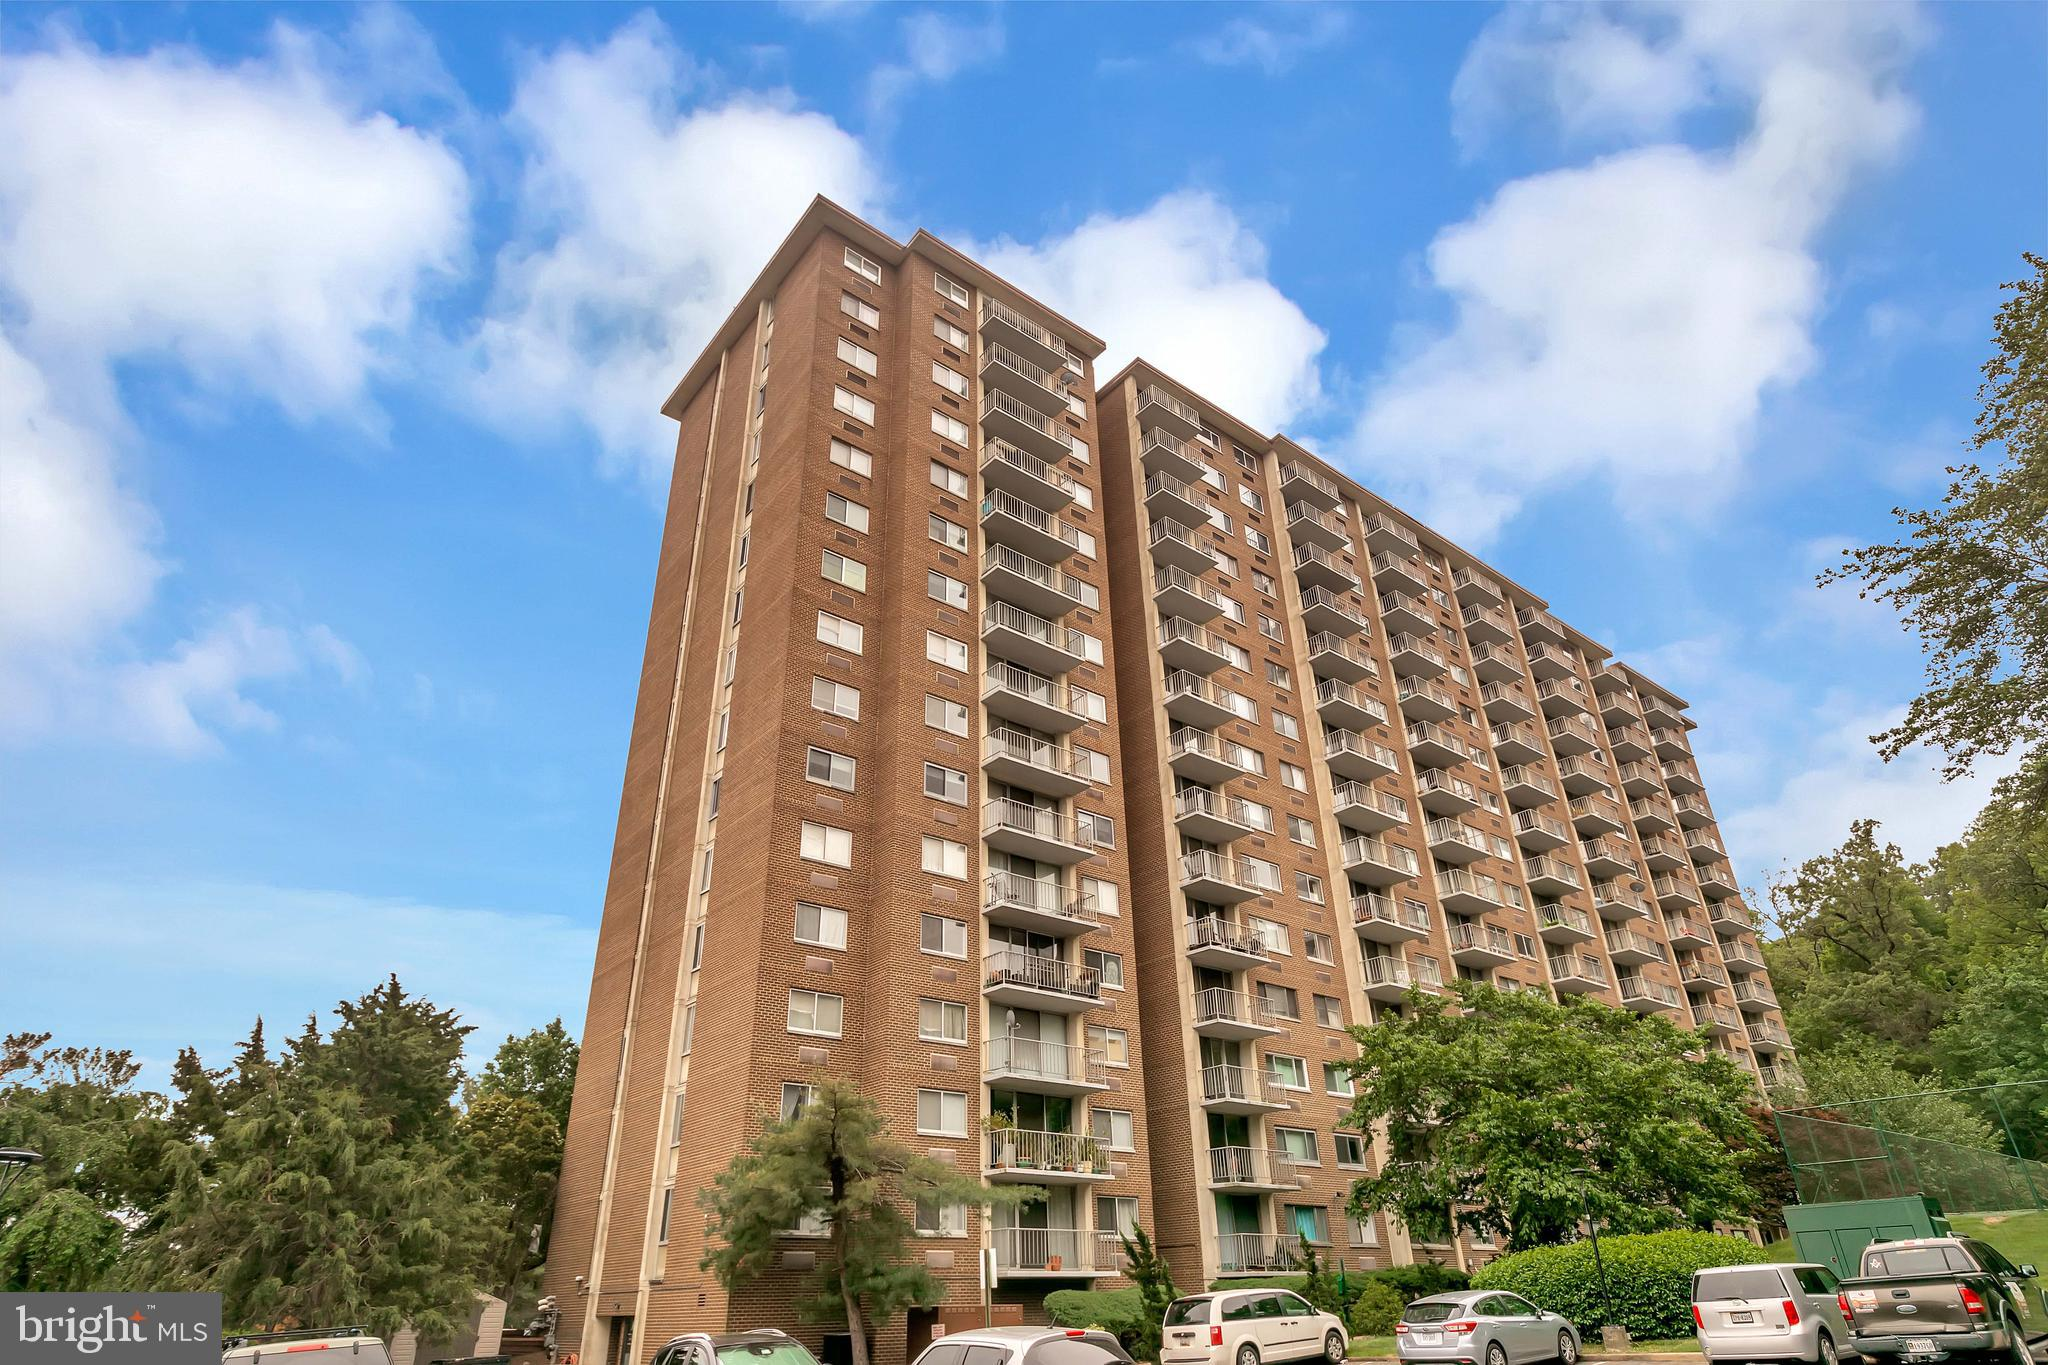 This Apartment is close to everything, on .7 mile to Huntington Ave Metro Station. Includes Tennis court and Swimming pool included in rent, sauna and party room. Lobby area and security gate. Close to ft Belvoir. Old Town, Easy access to 495 and 5 blocks from Huntington Metro.